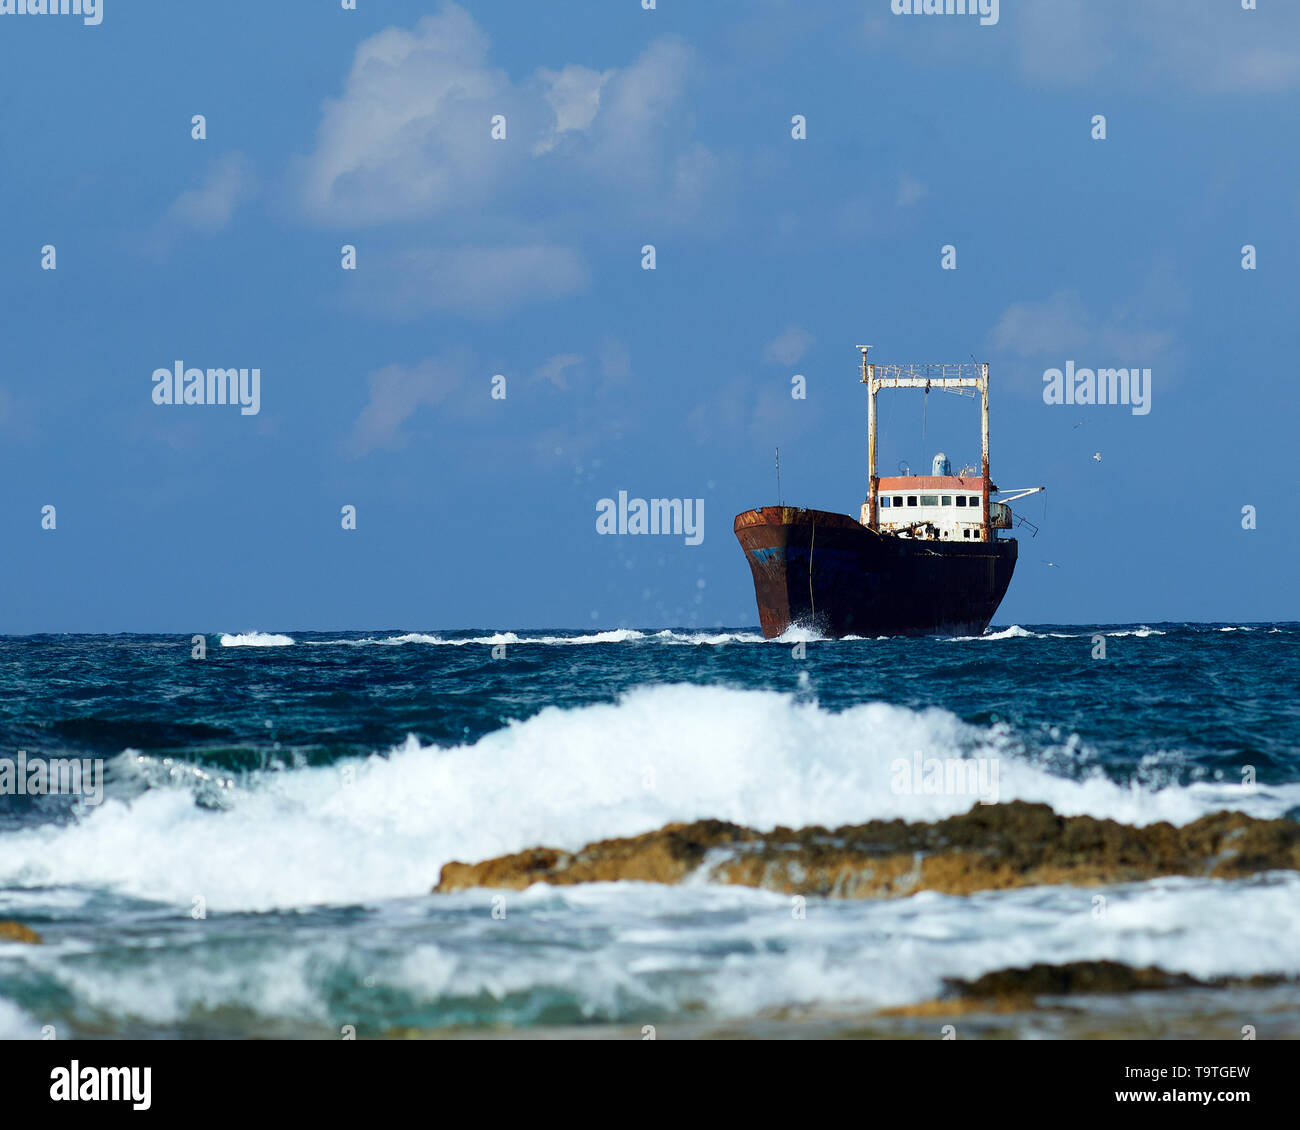 Shipwrecked MV Demetrios II, Cyprus - Stock Image